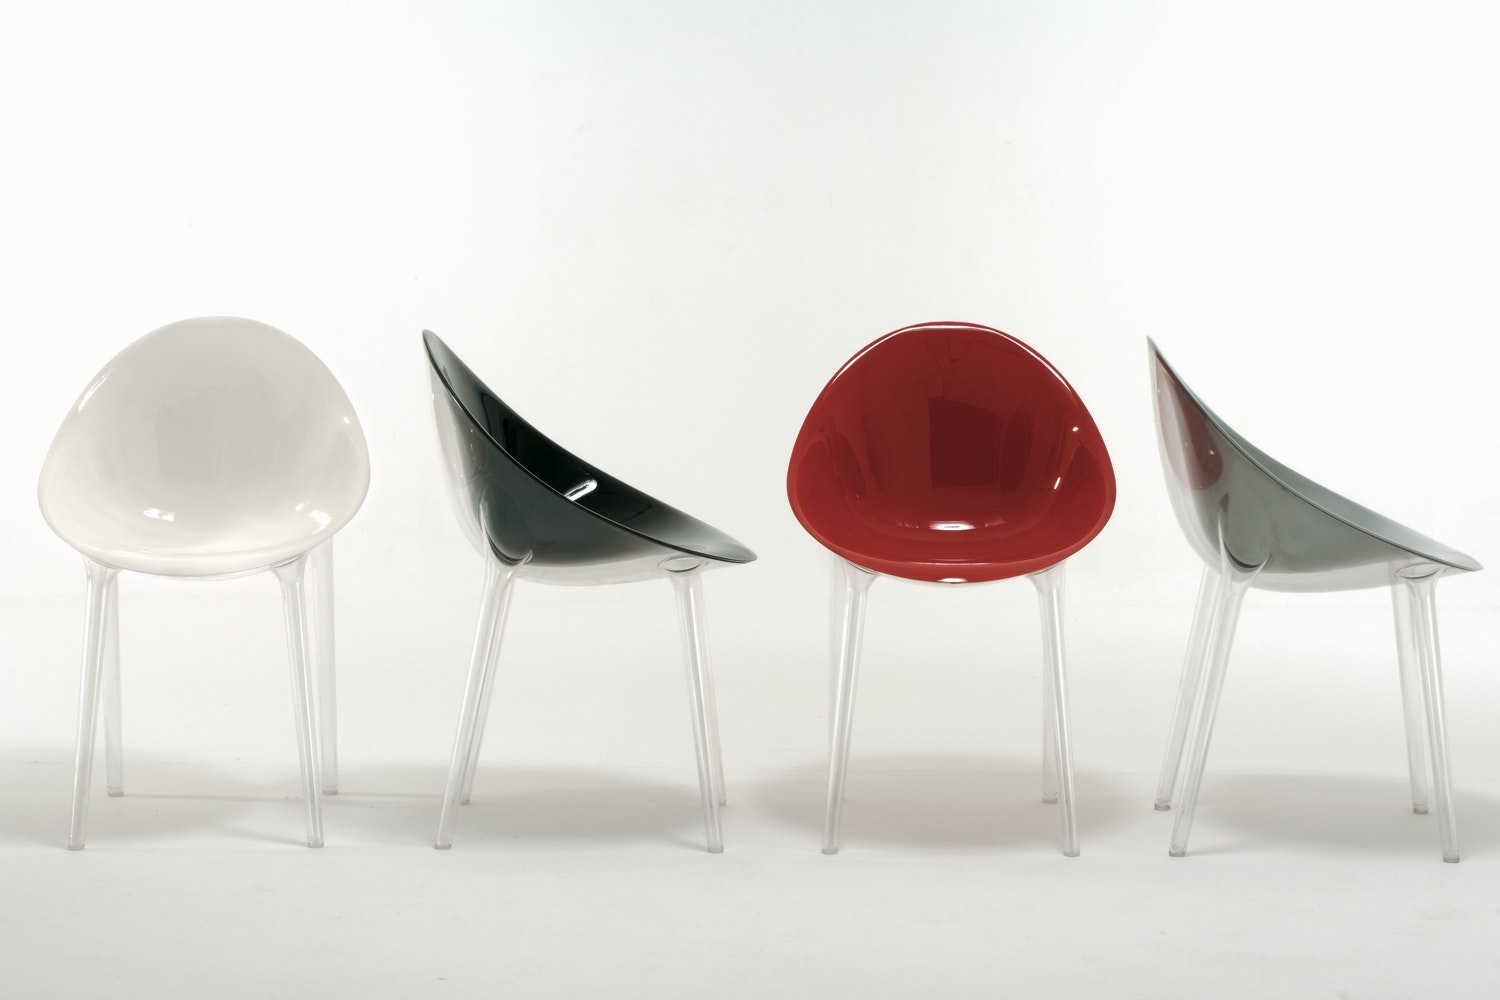 Mr. Impossible Chair by Philippe Starck with Eugeni Quitllet for Kartell